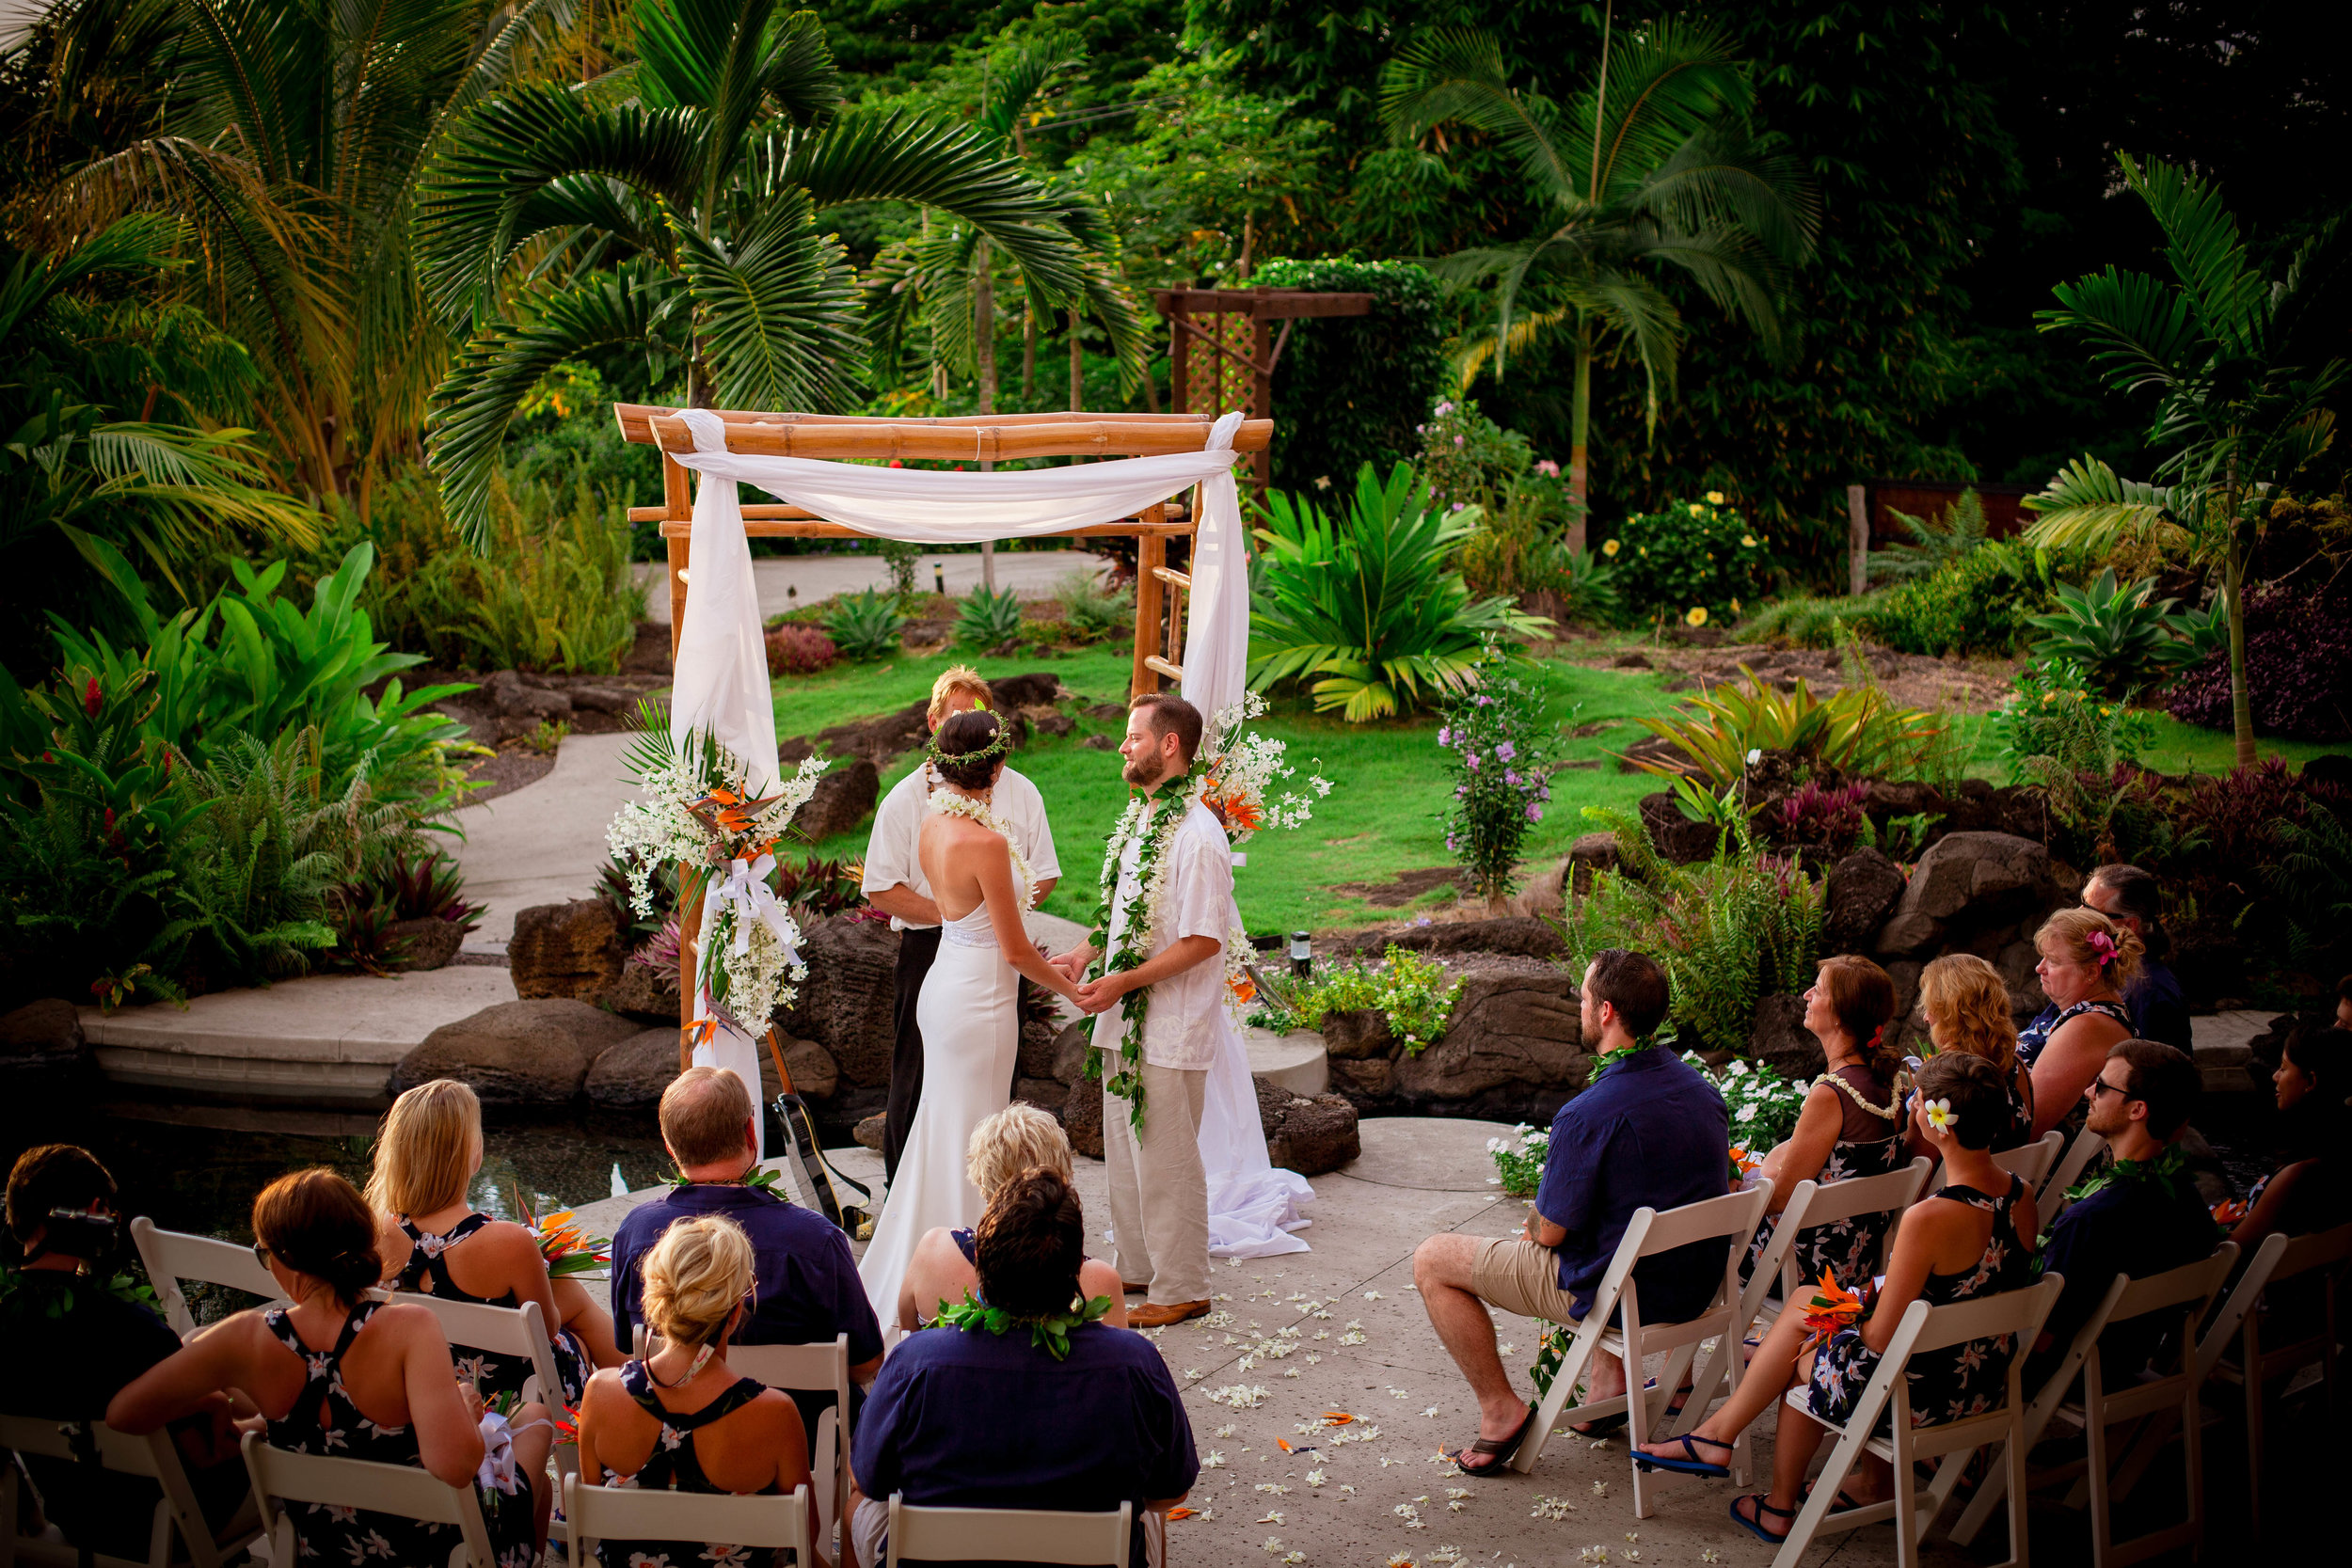 big island hawaii holualoa estate wedding 20160908175812-1kb.jpg